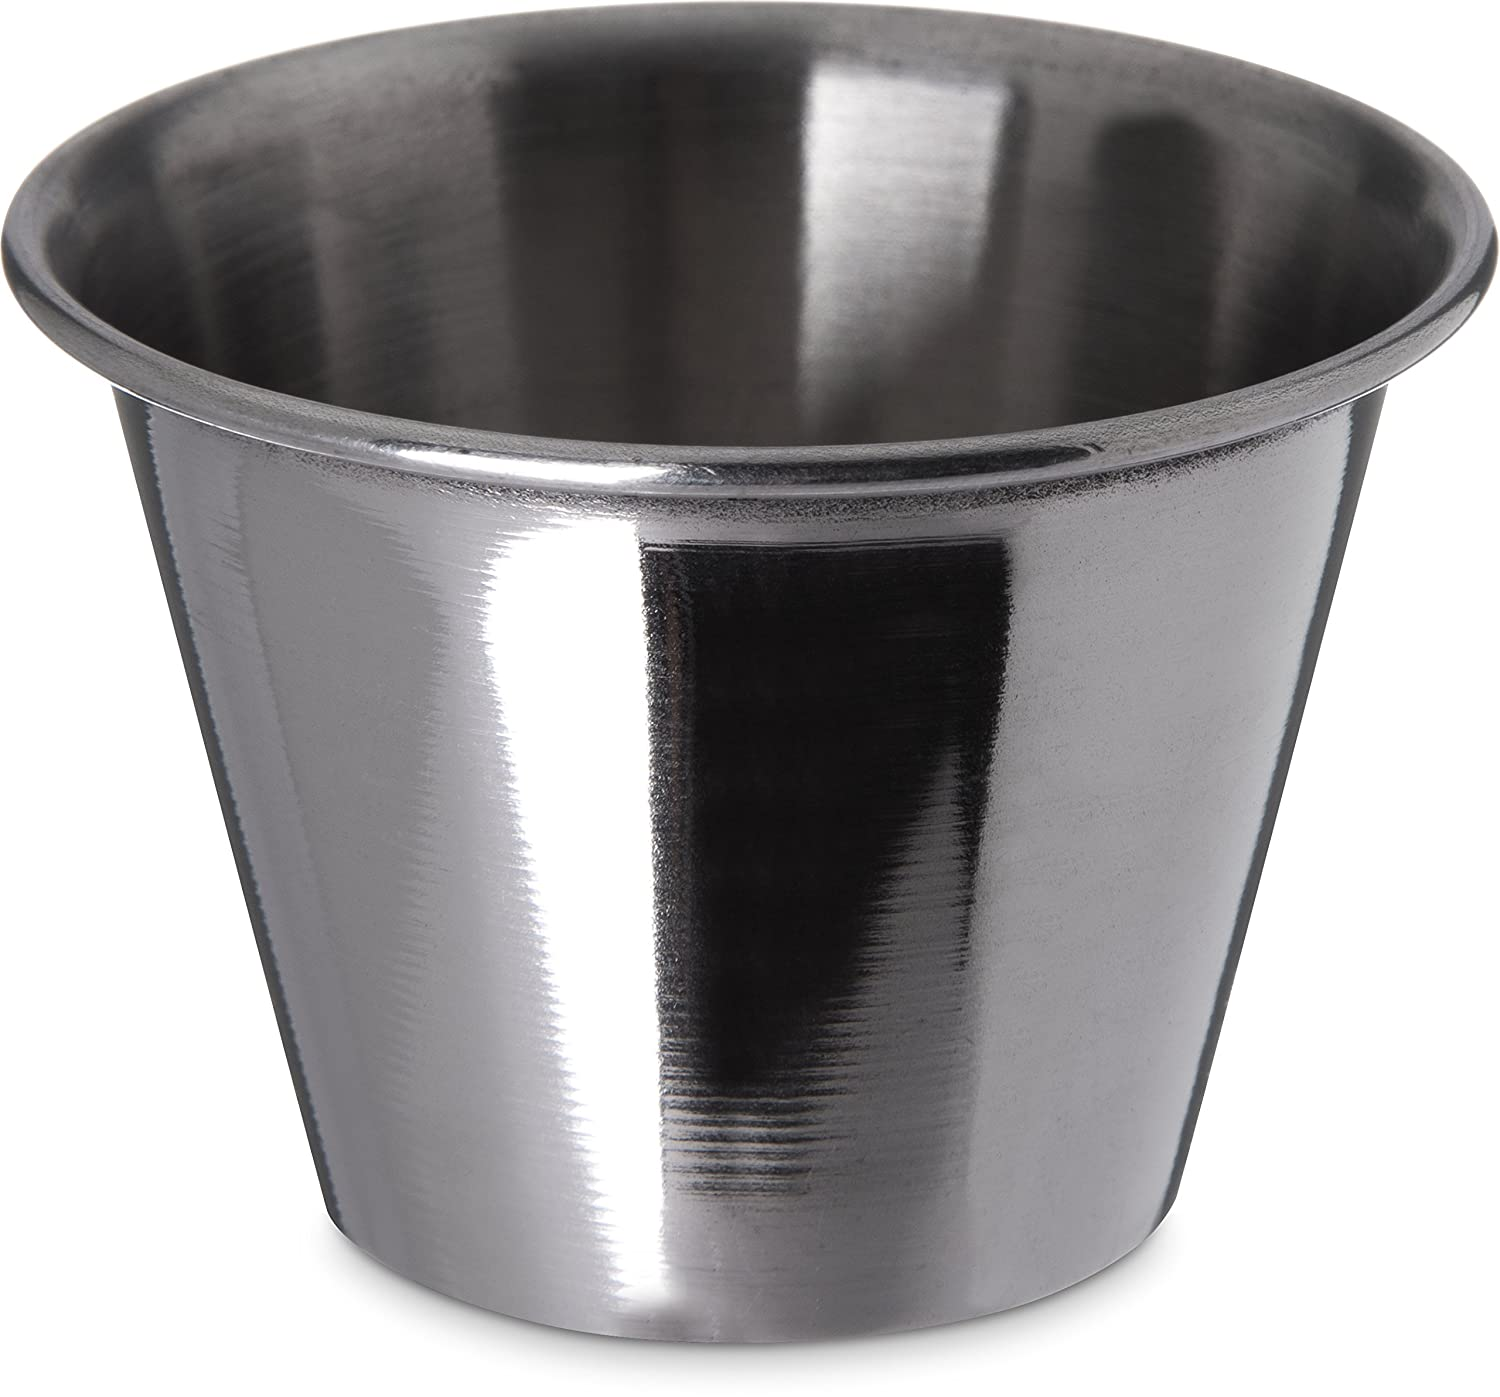 Carlisle 602500 Ramekin Dipping Sauce Cup, 2.5 oz, Stainless Steel (Pack of 12)